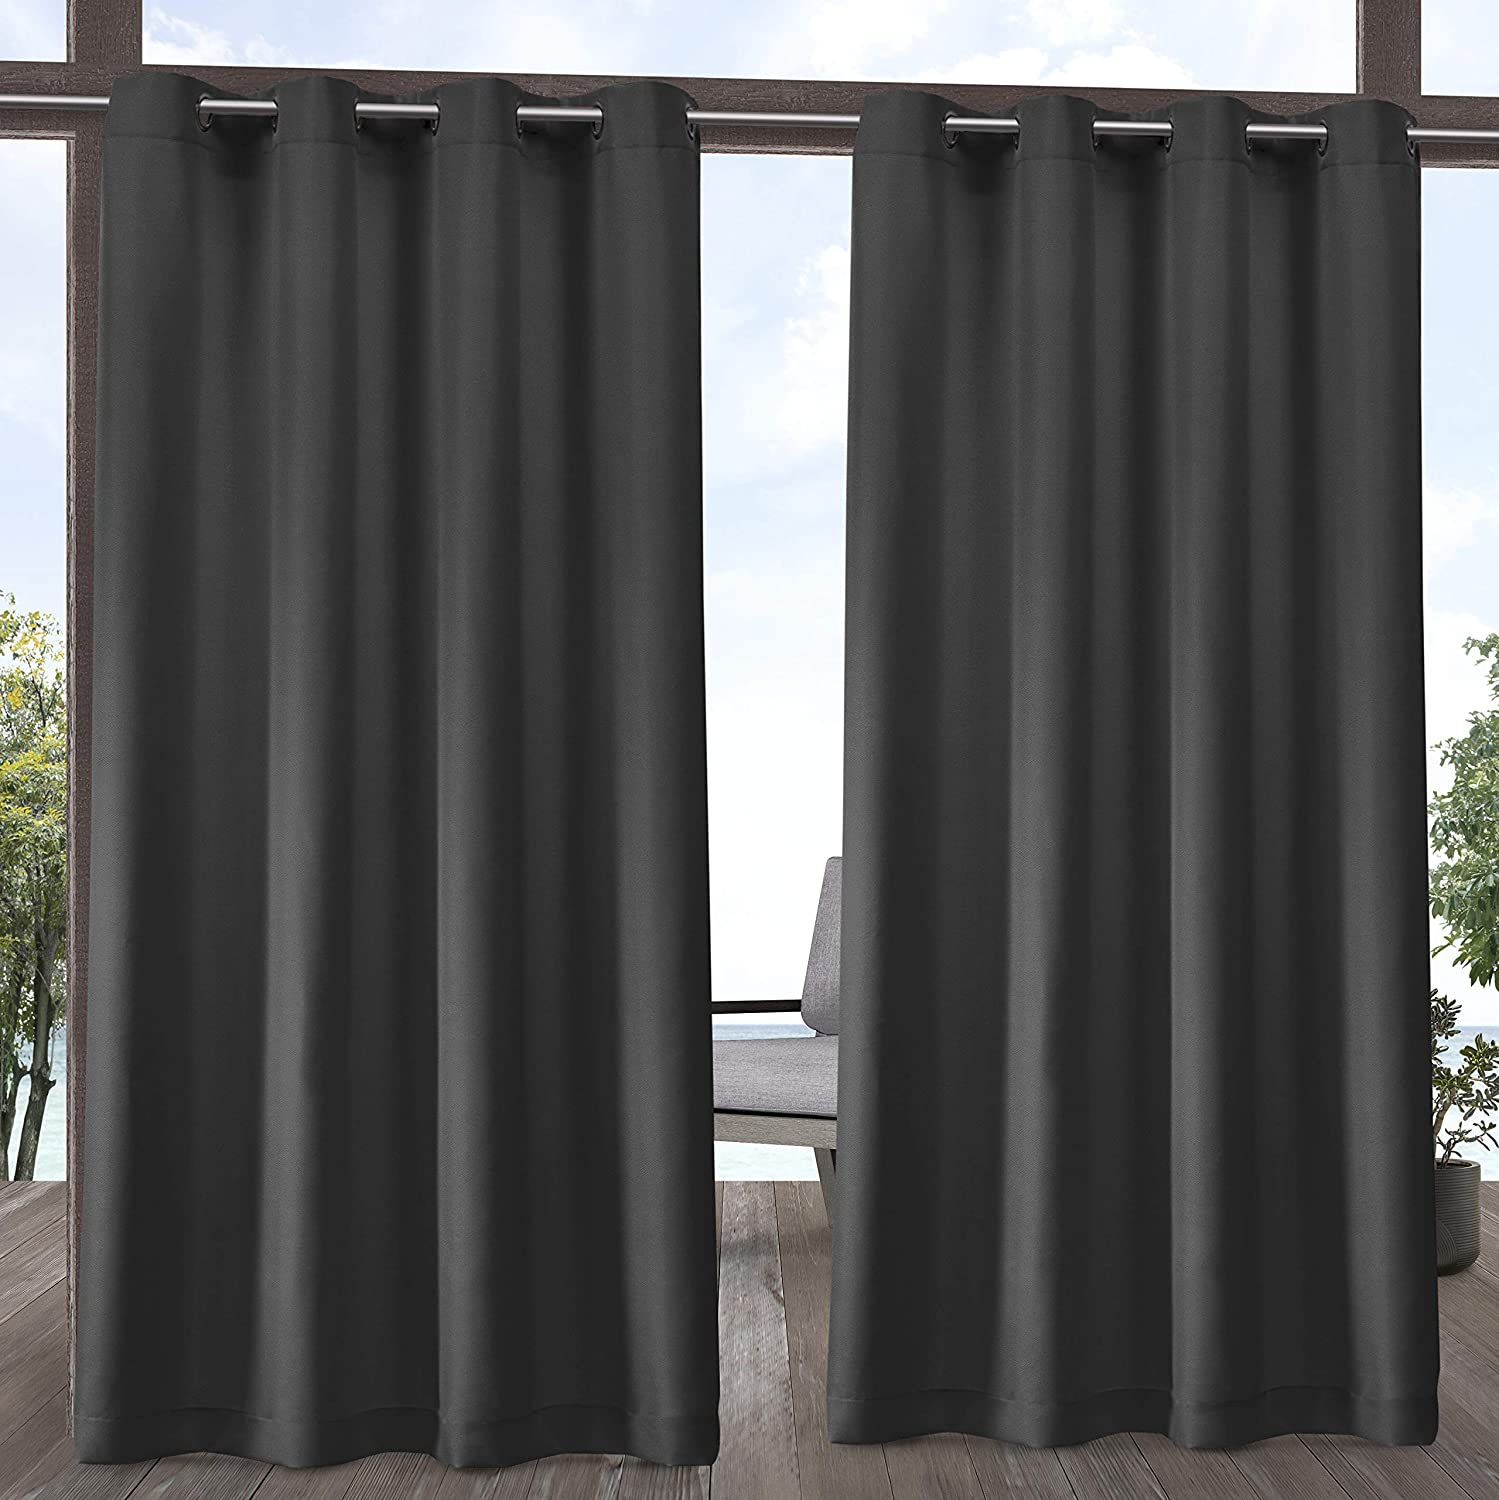 Exclusive Home Curtains Indoor/Outdoor Solid Cabana Grommet Top Curtain Panel Pair, 54x120, Charcoal